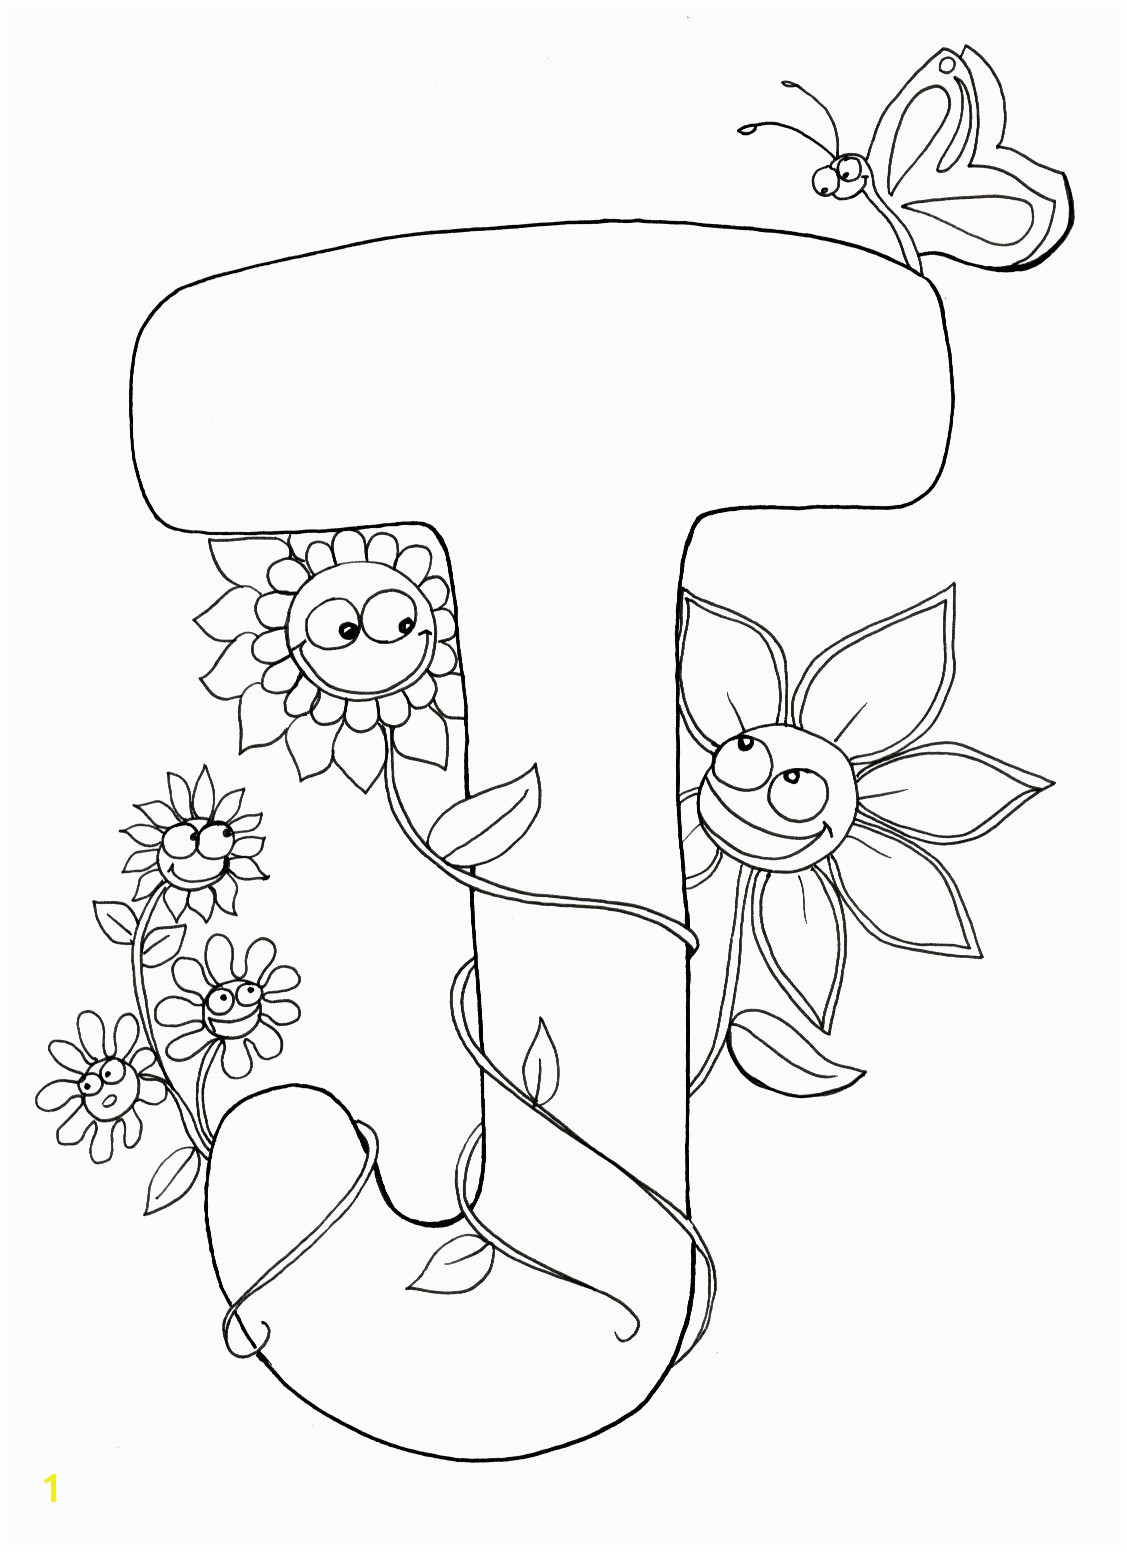 Free Coloring Pages Letter O Arresting Coloring Pages Letters the Alphabet Awesome Printable Pin Od